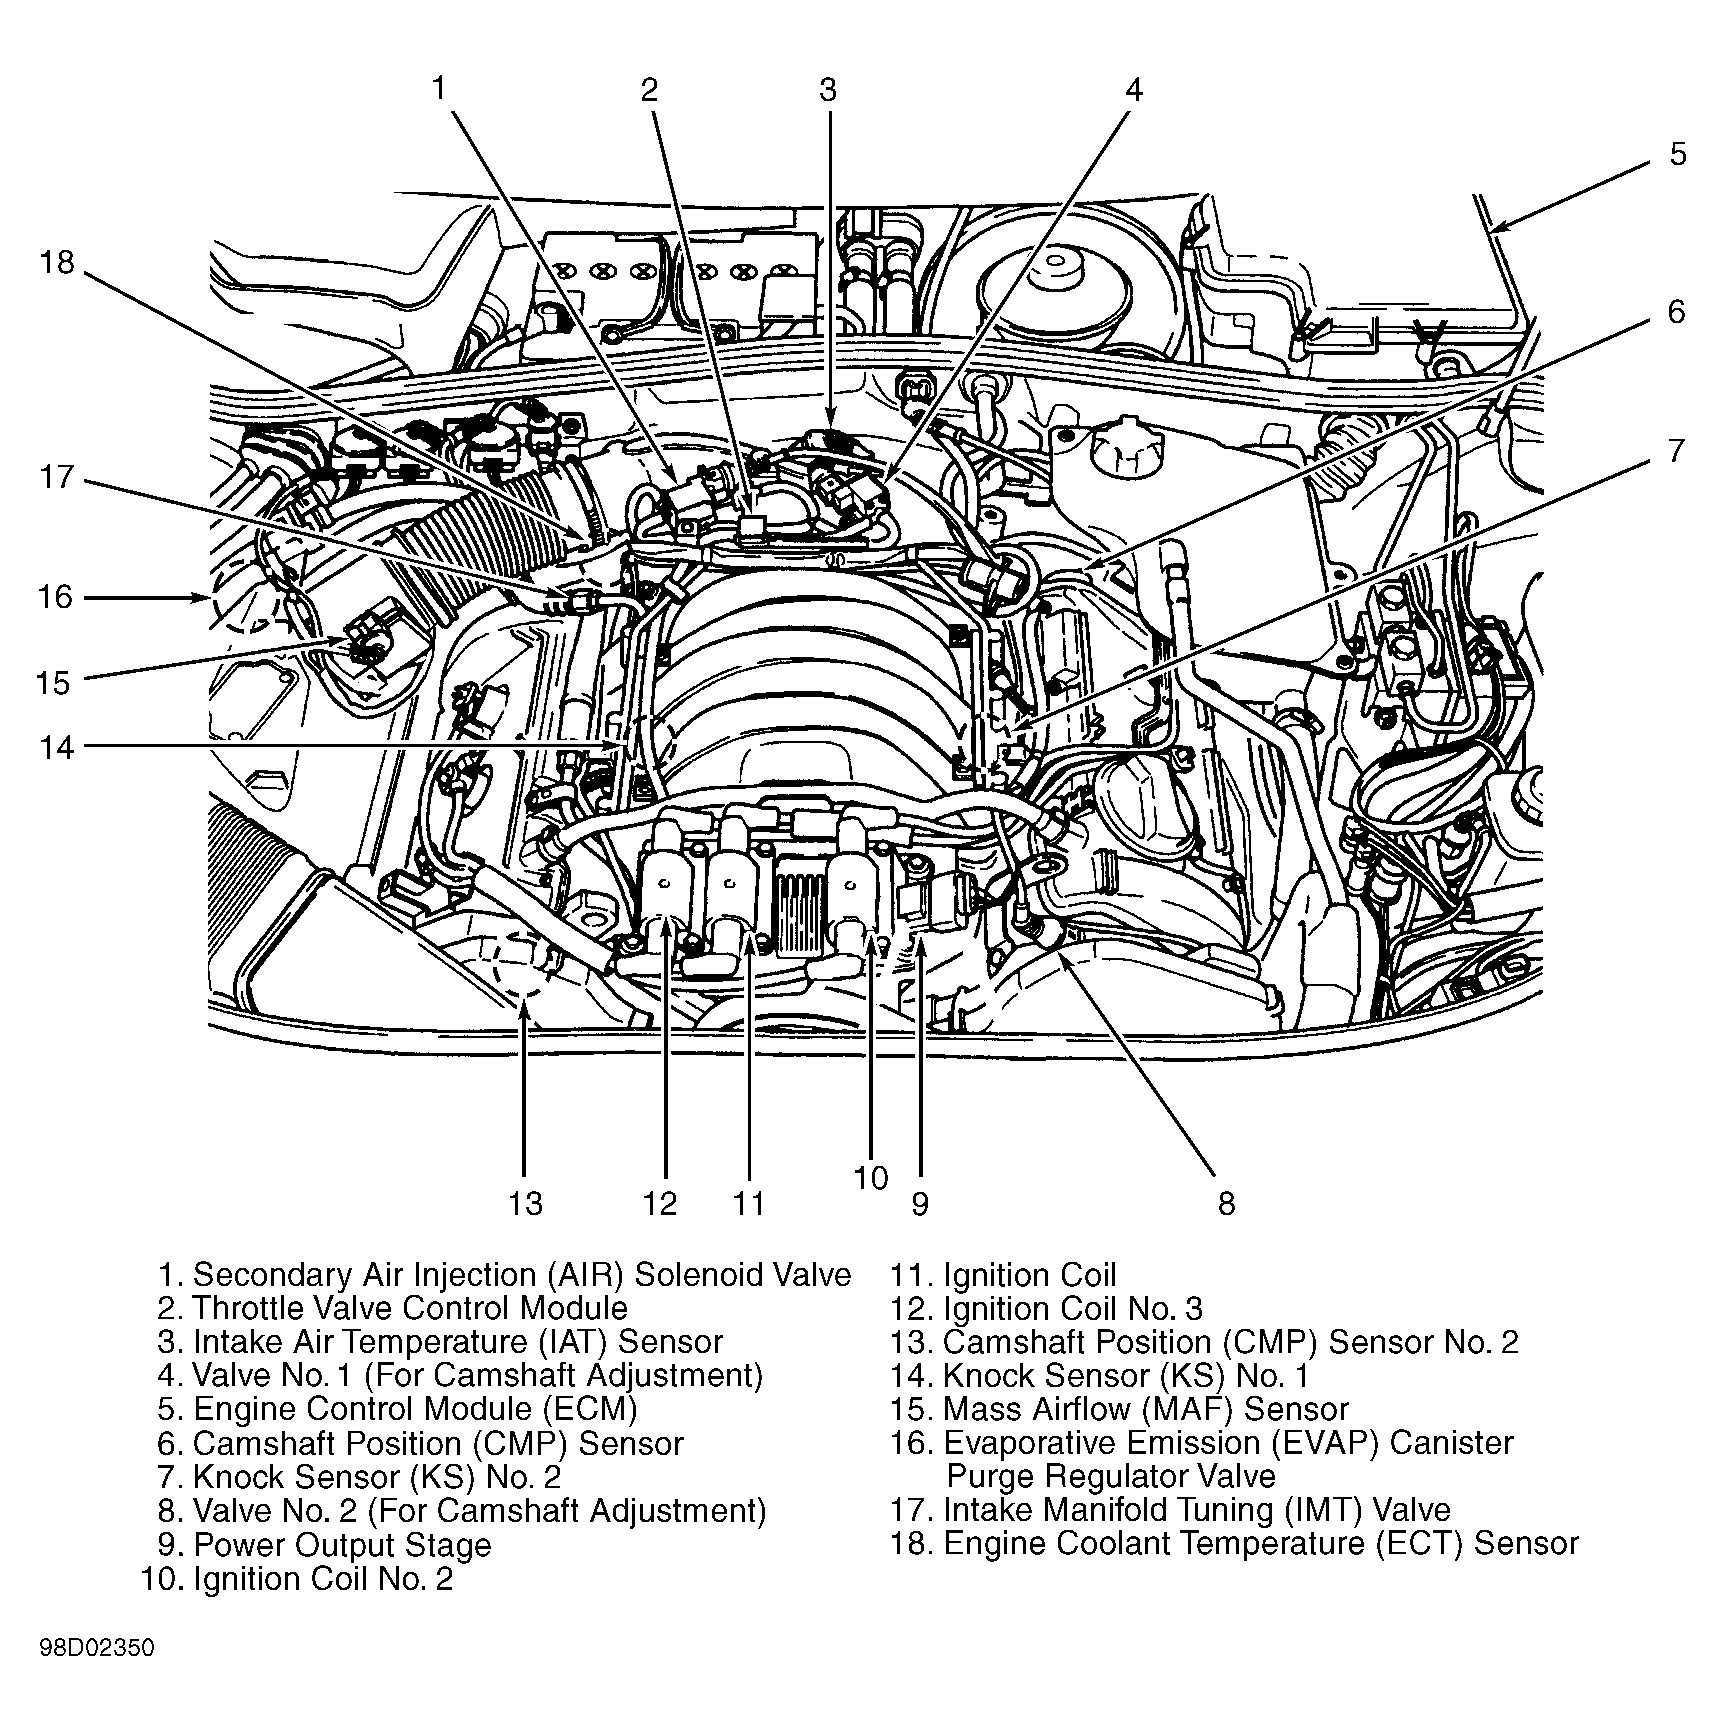 hight resolution of plymouth engine diagrams wiring diagram expert 1990 plymouth acclaim engine diagram dodge 383 engine breakdown diagram